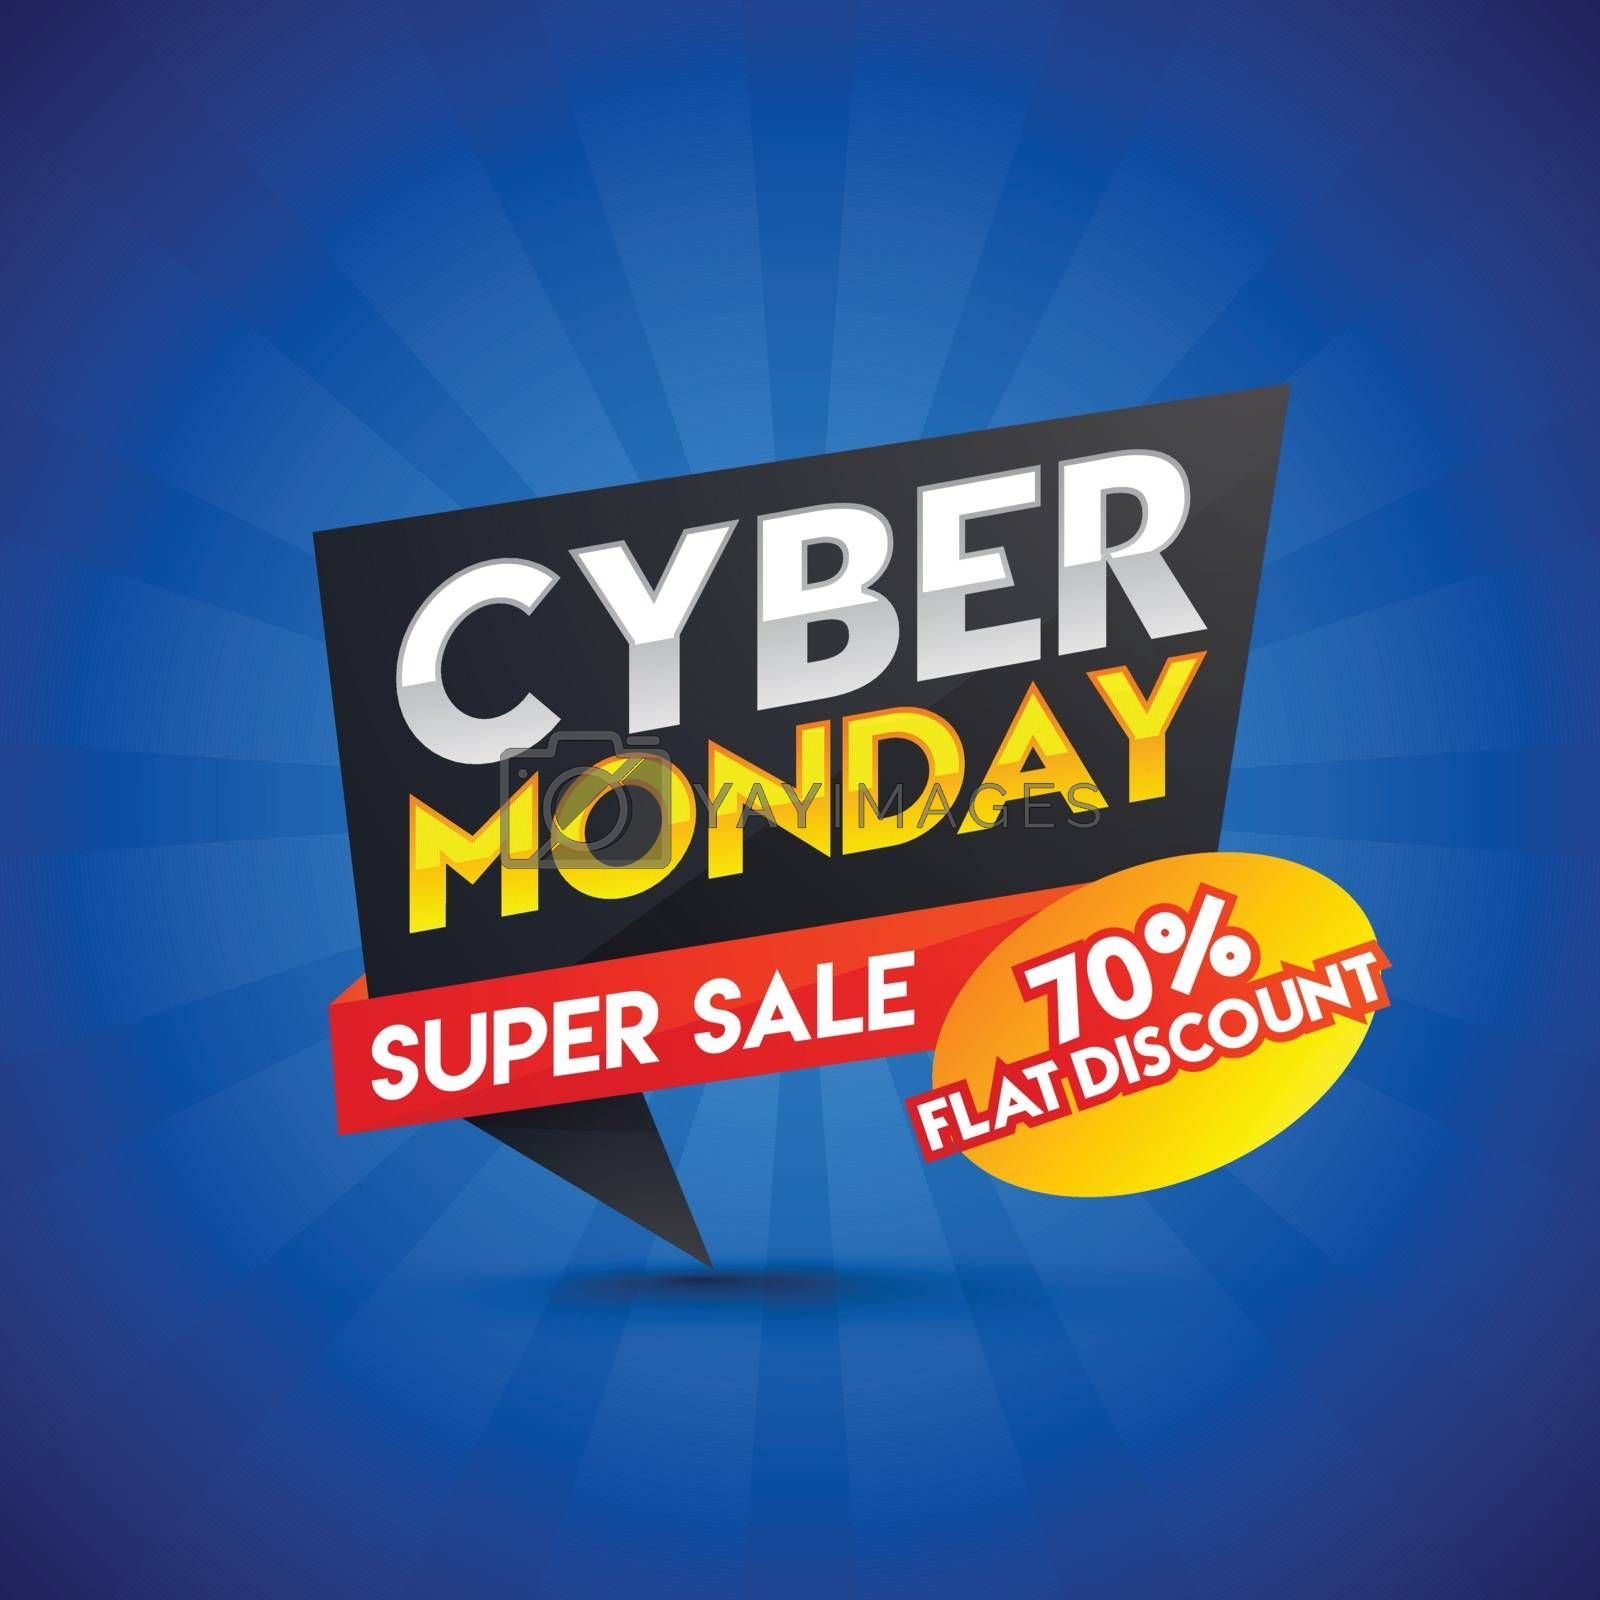 Super sale ribbon or tag with flat 70% discount offer on blue ray background for Cyber Monday sale.